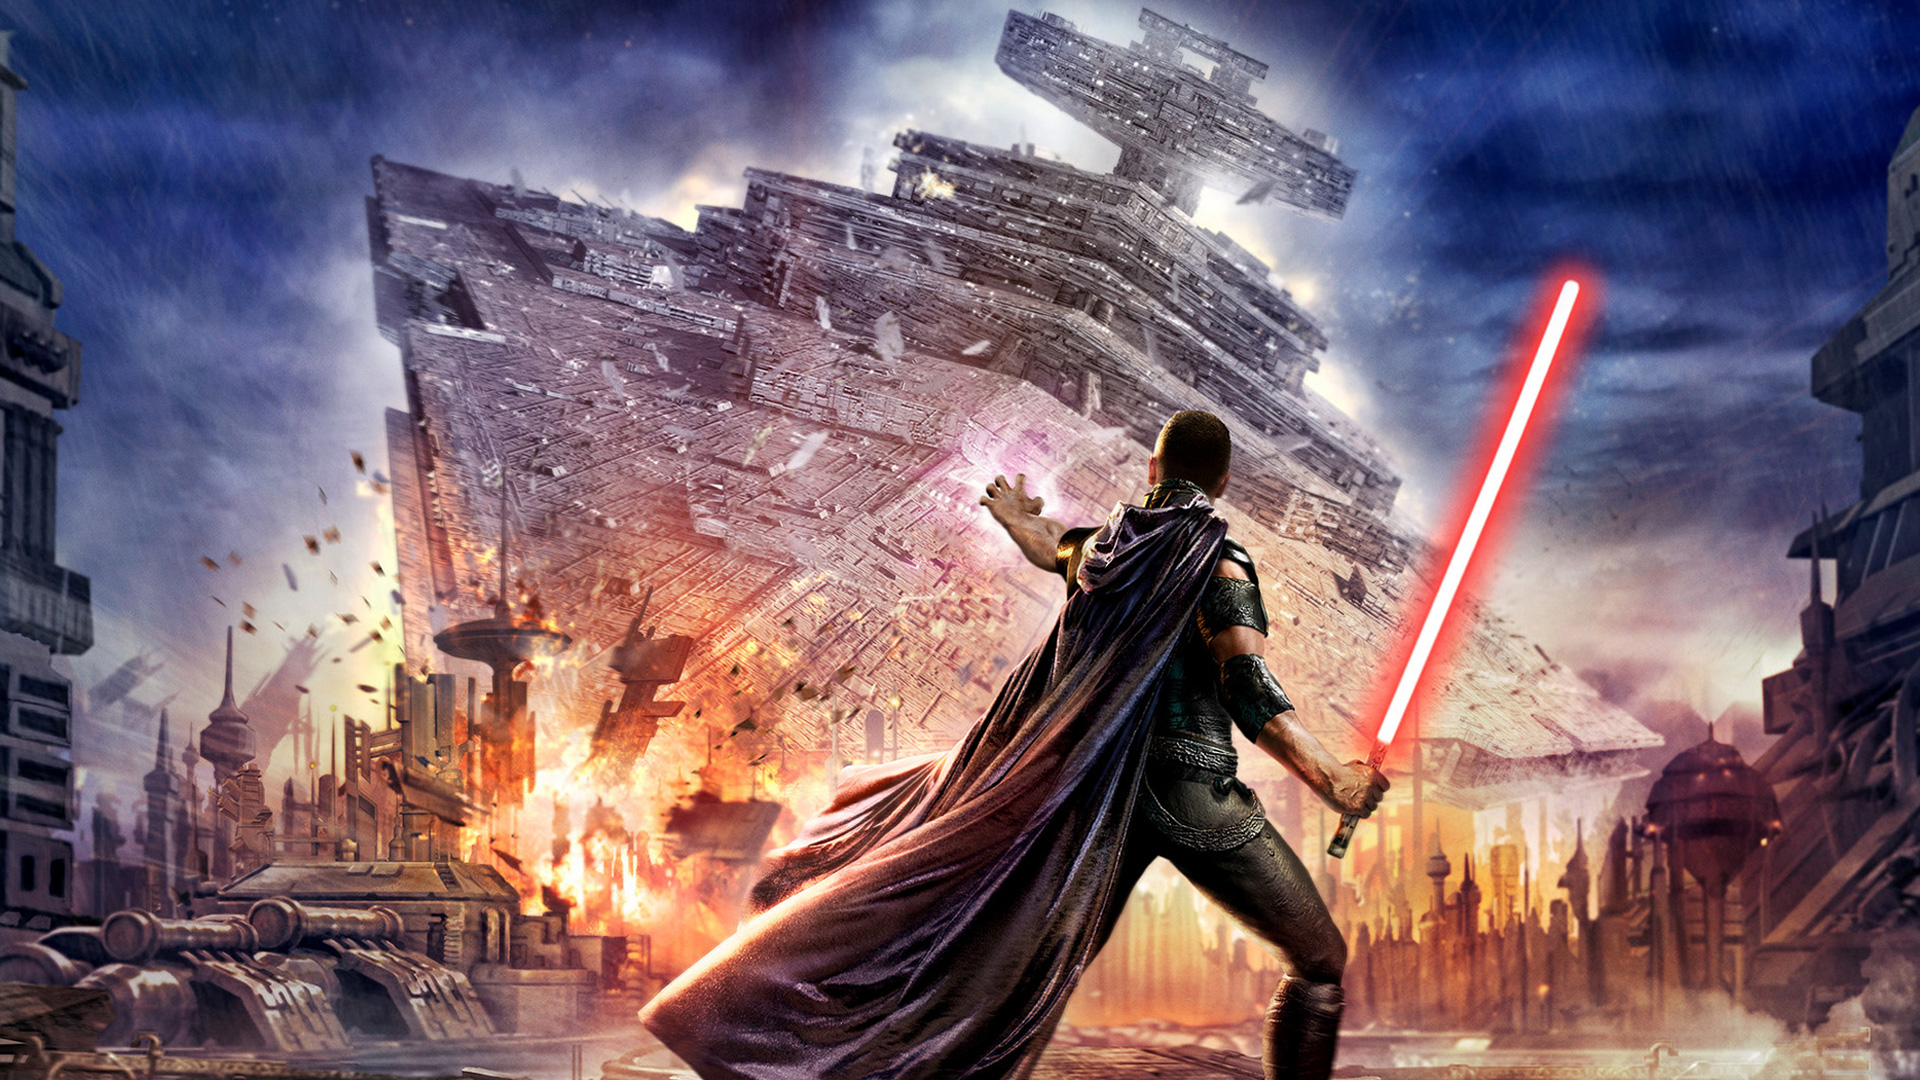 Star Wars The Force Unleashed wallpaper 14